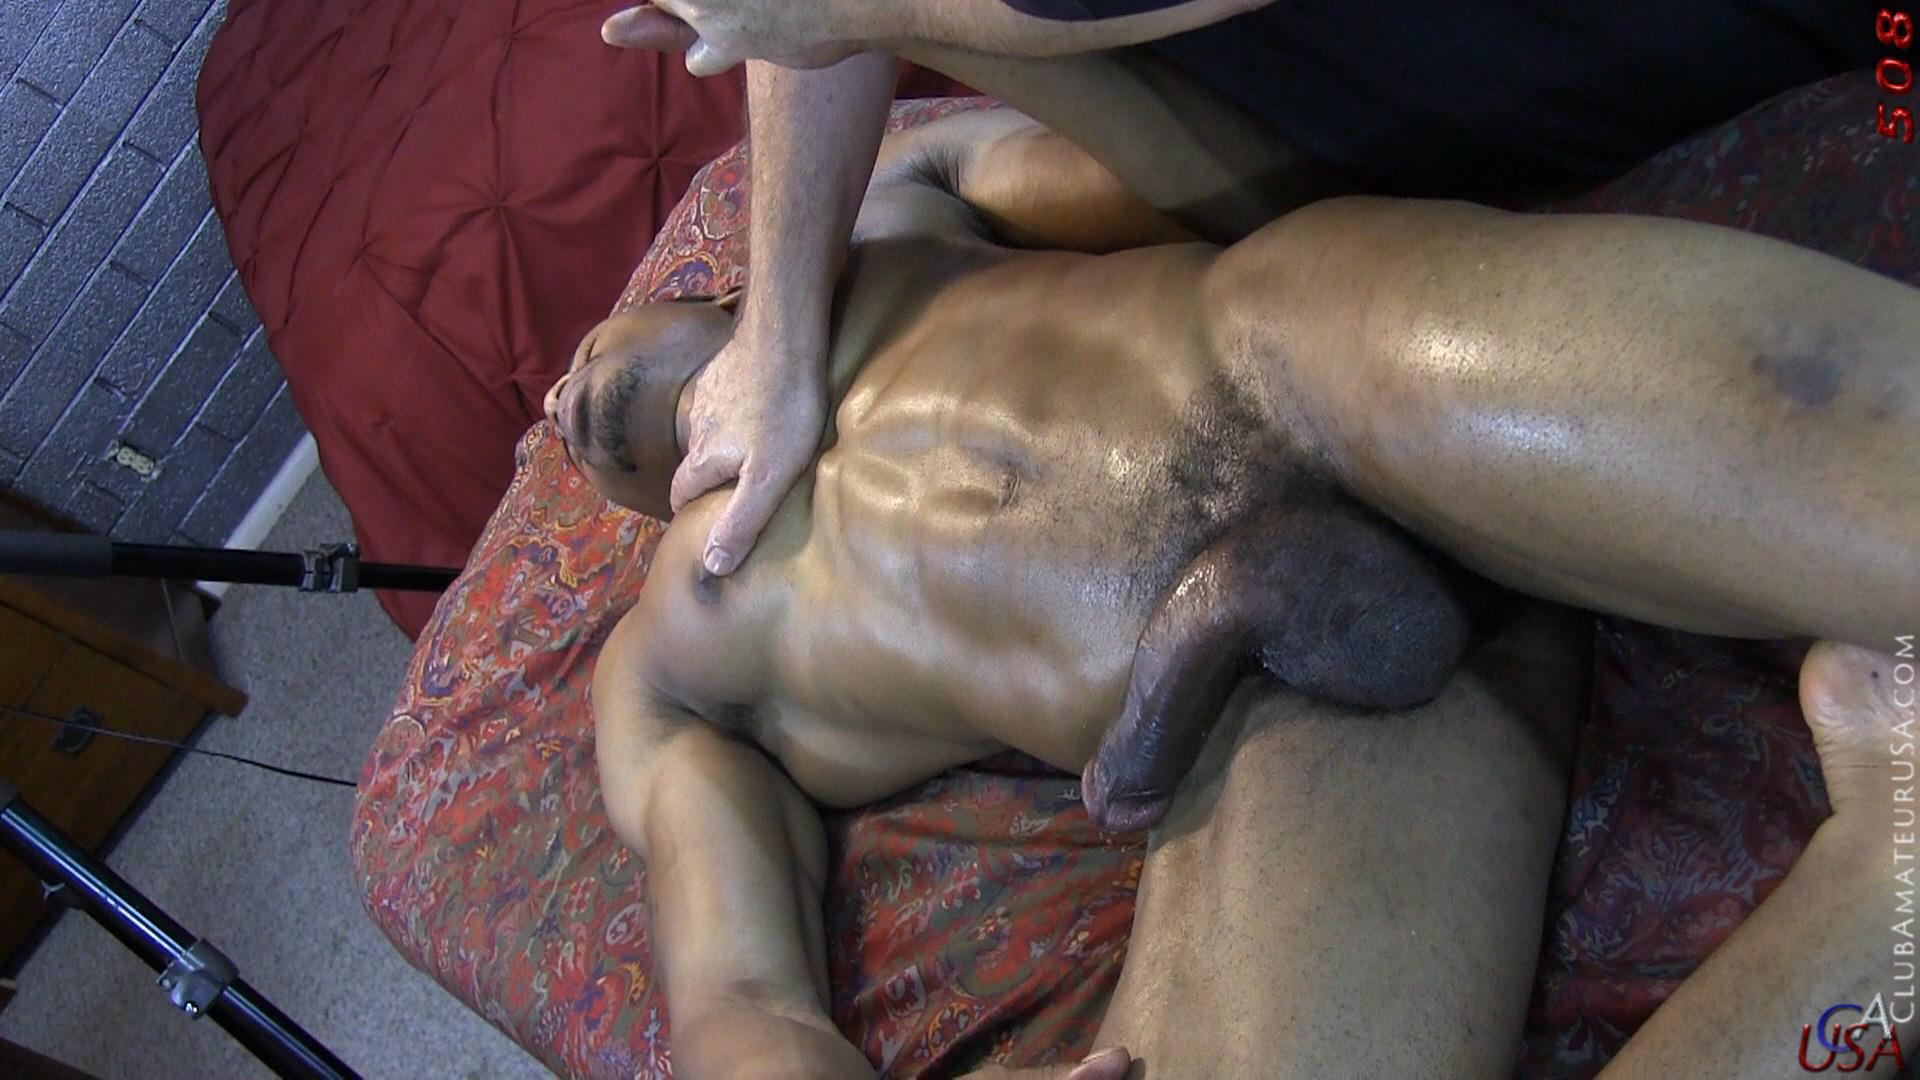 Club Amateur USA Gracen Straight Big Black Cock Getting Sucked With Cum Amateur Gay Porn 54 Straight Ghetto Thug Gets A Massage With A Happy Ending From A Guy